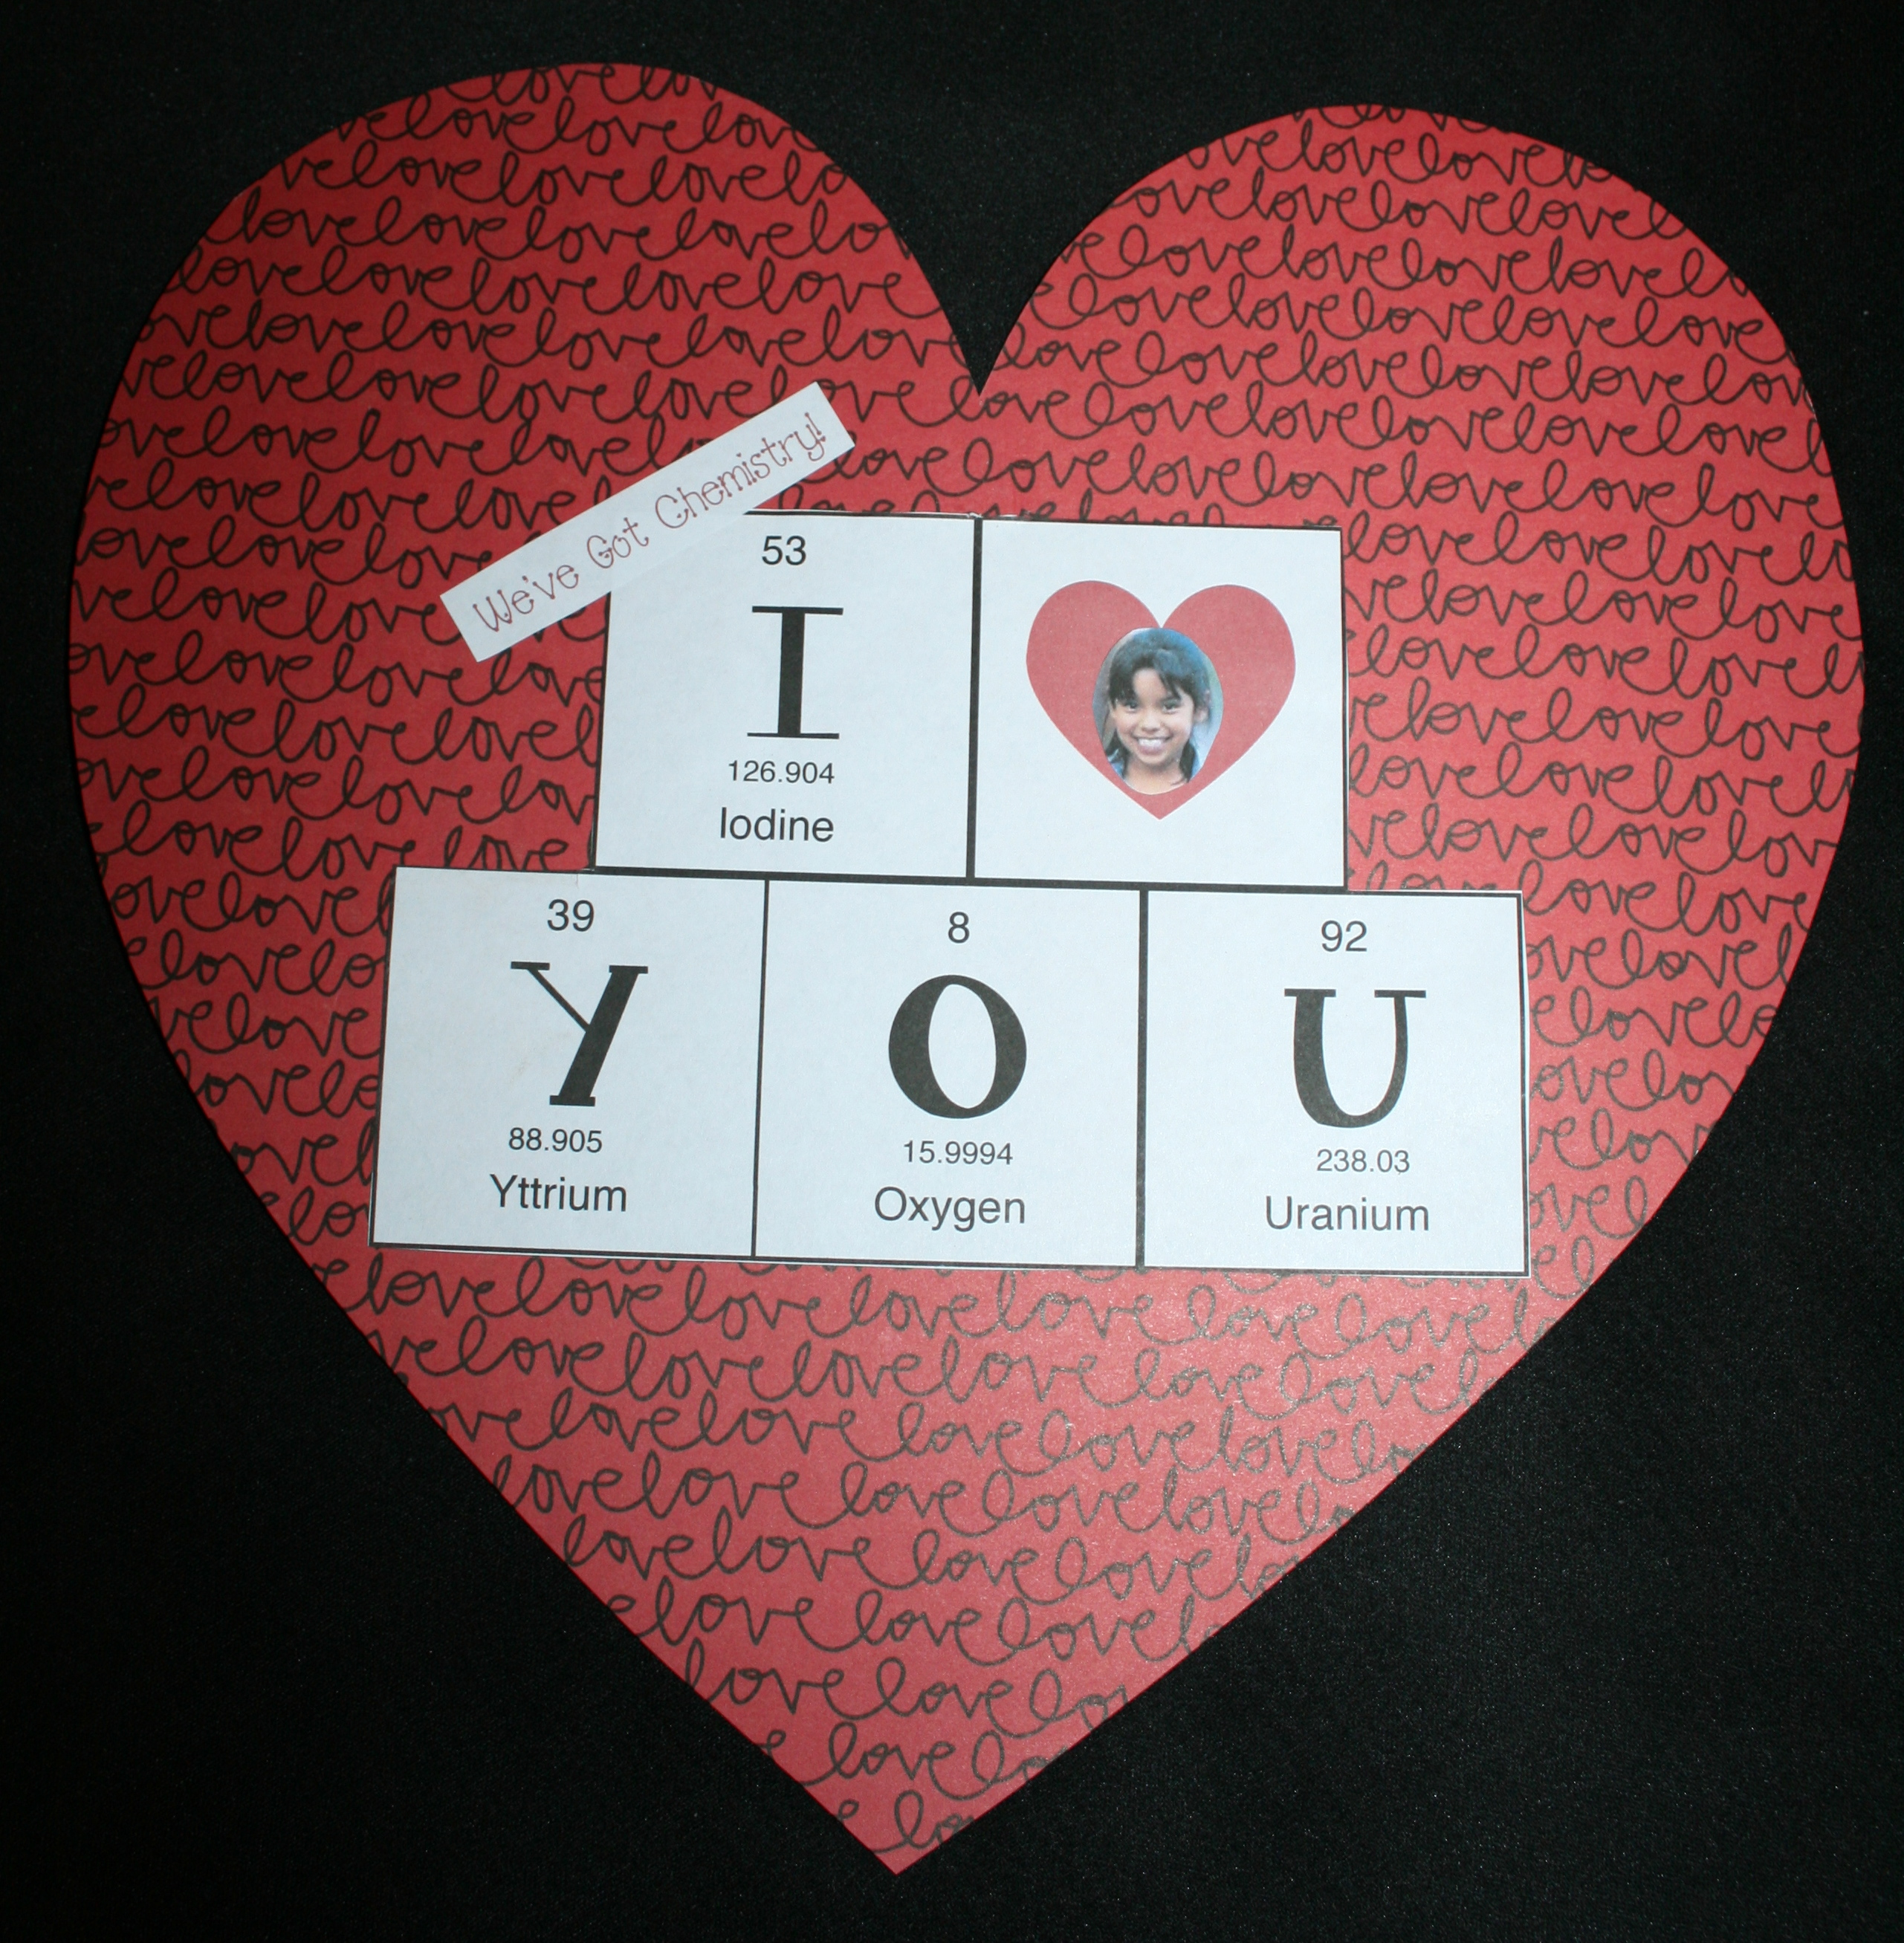 chemistry activities, valentines, valentine activities, We've got chemistry, heart activities, valentine crafts, valentine cards, word work for February, February bulletin board ideas, bulletin boards for February,